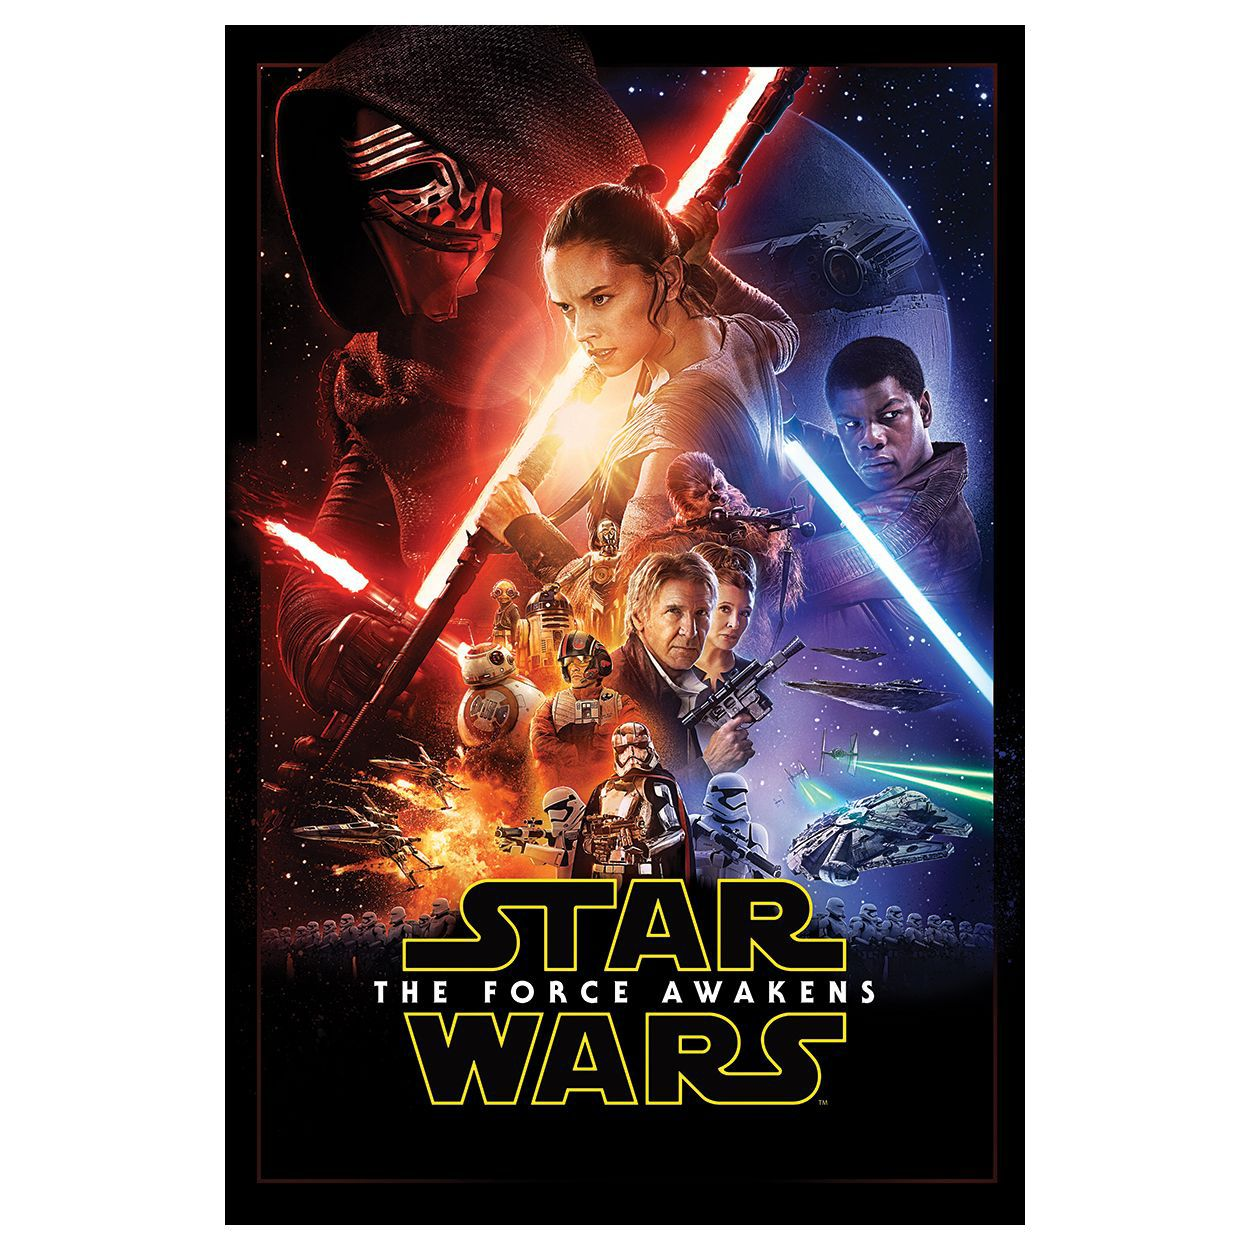 star wars the force awakens multicolour movie poster canvas print